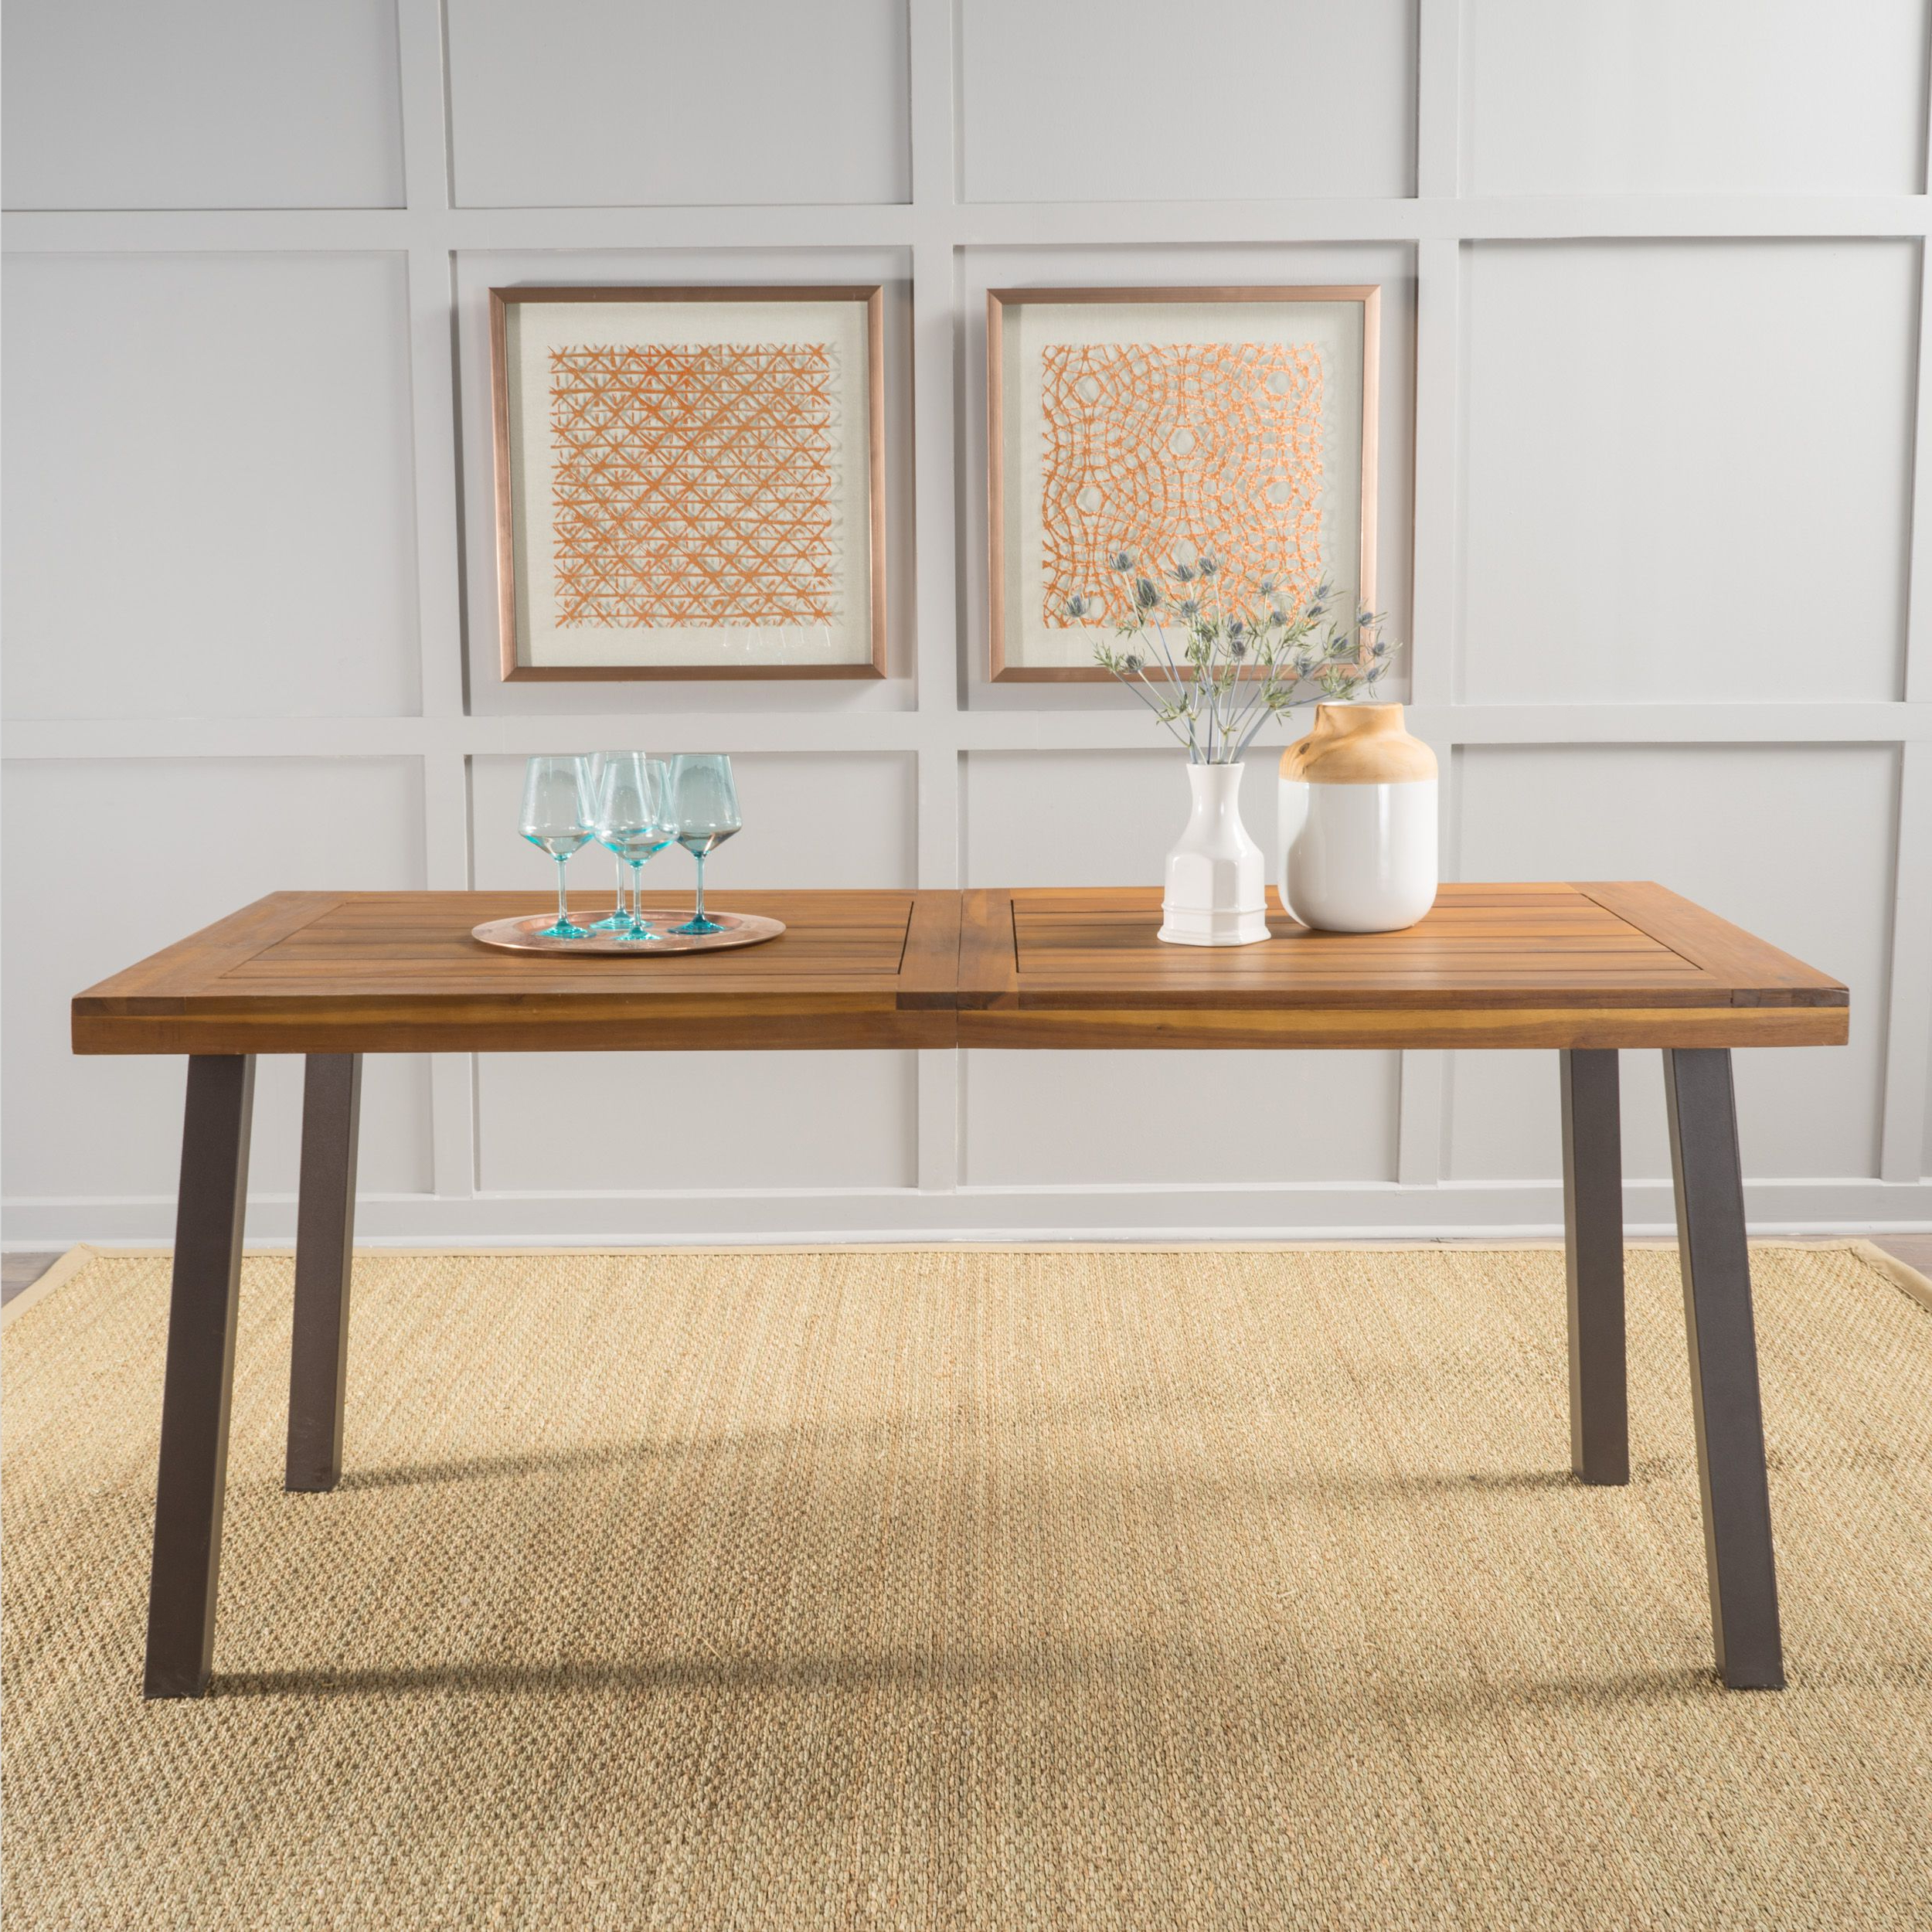 Widely Used The 8 Best Dining Room Tables At Walmart In 2020 Throughout Medium Elegant Dining Tables (View 16 of 30)